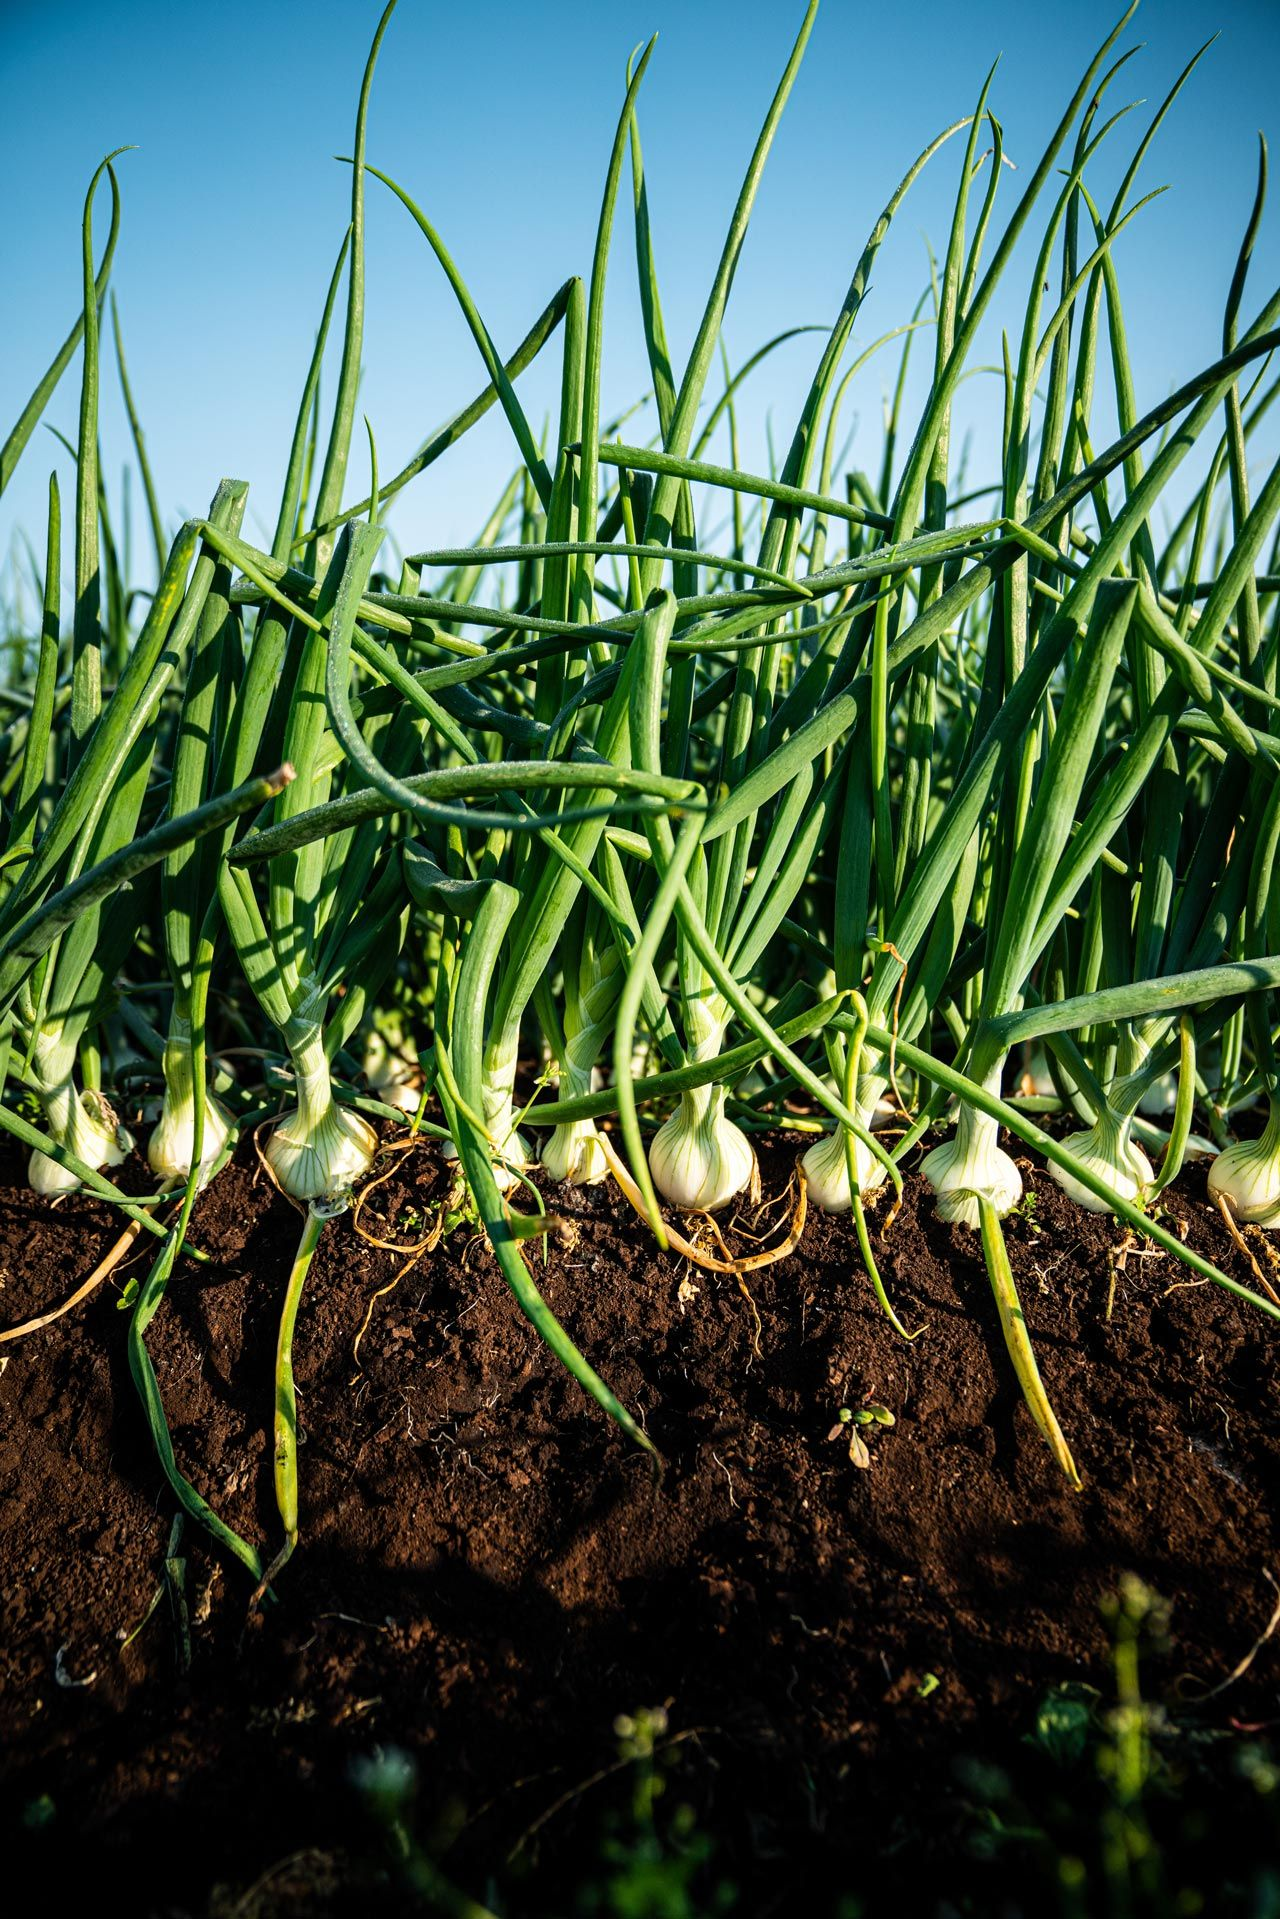 young plant of garlics in the dirt by Bruno Florin for Sollio Agriculture